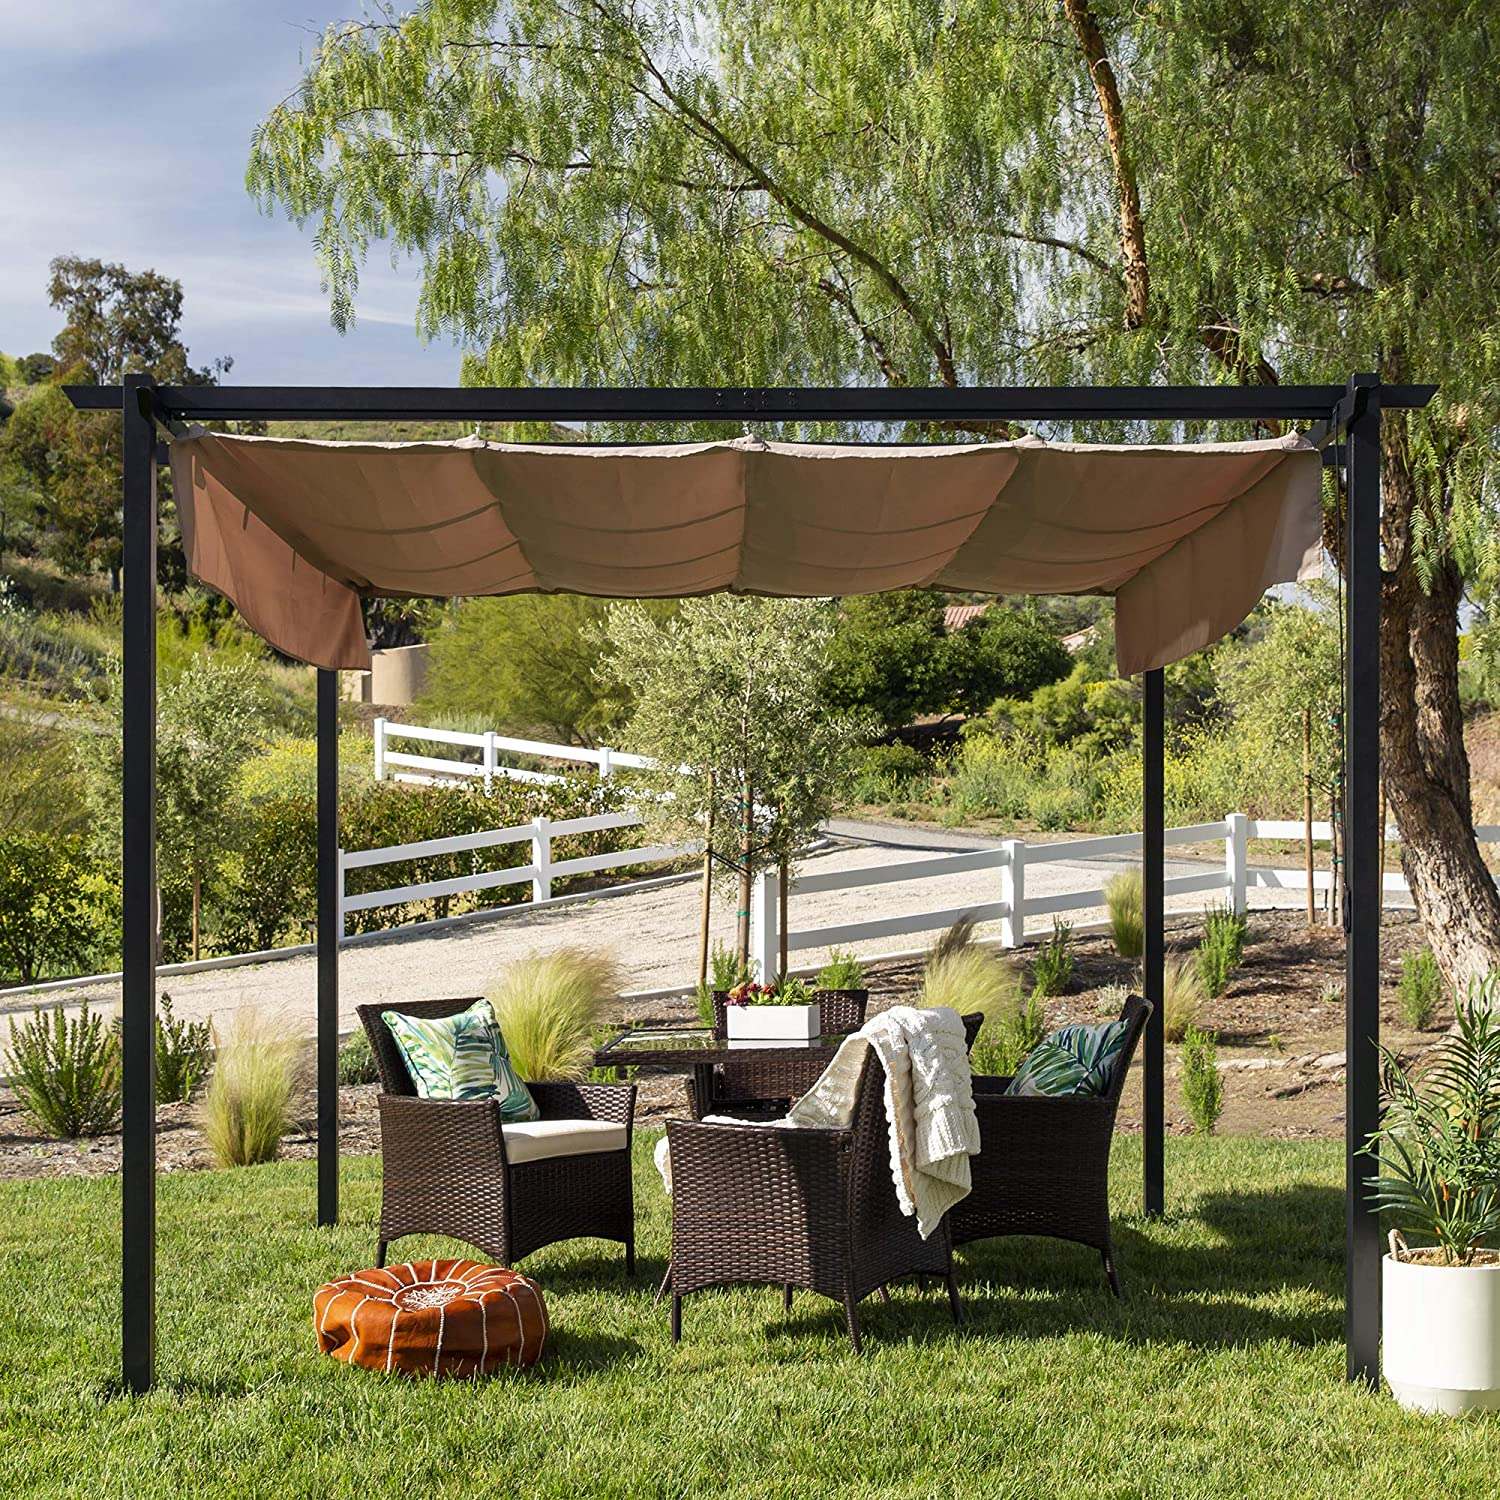 Steel Frame Best Choice Products 10x10ft Extra-Large Outdoor Pergola Shelter for Backyard /& Patio w//Removable Retractable Sun Shade Canopy Cover Weather-Resistant Fabric 16 Ground Stakes